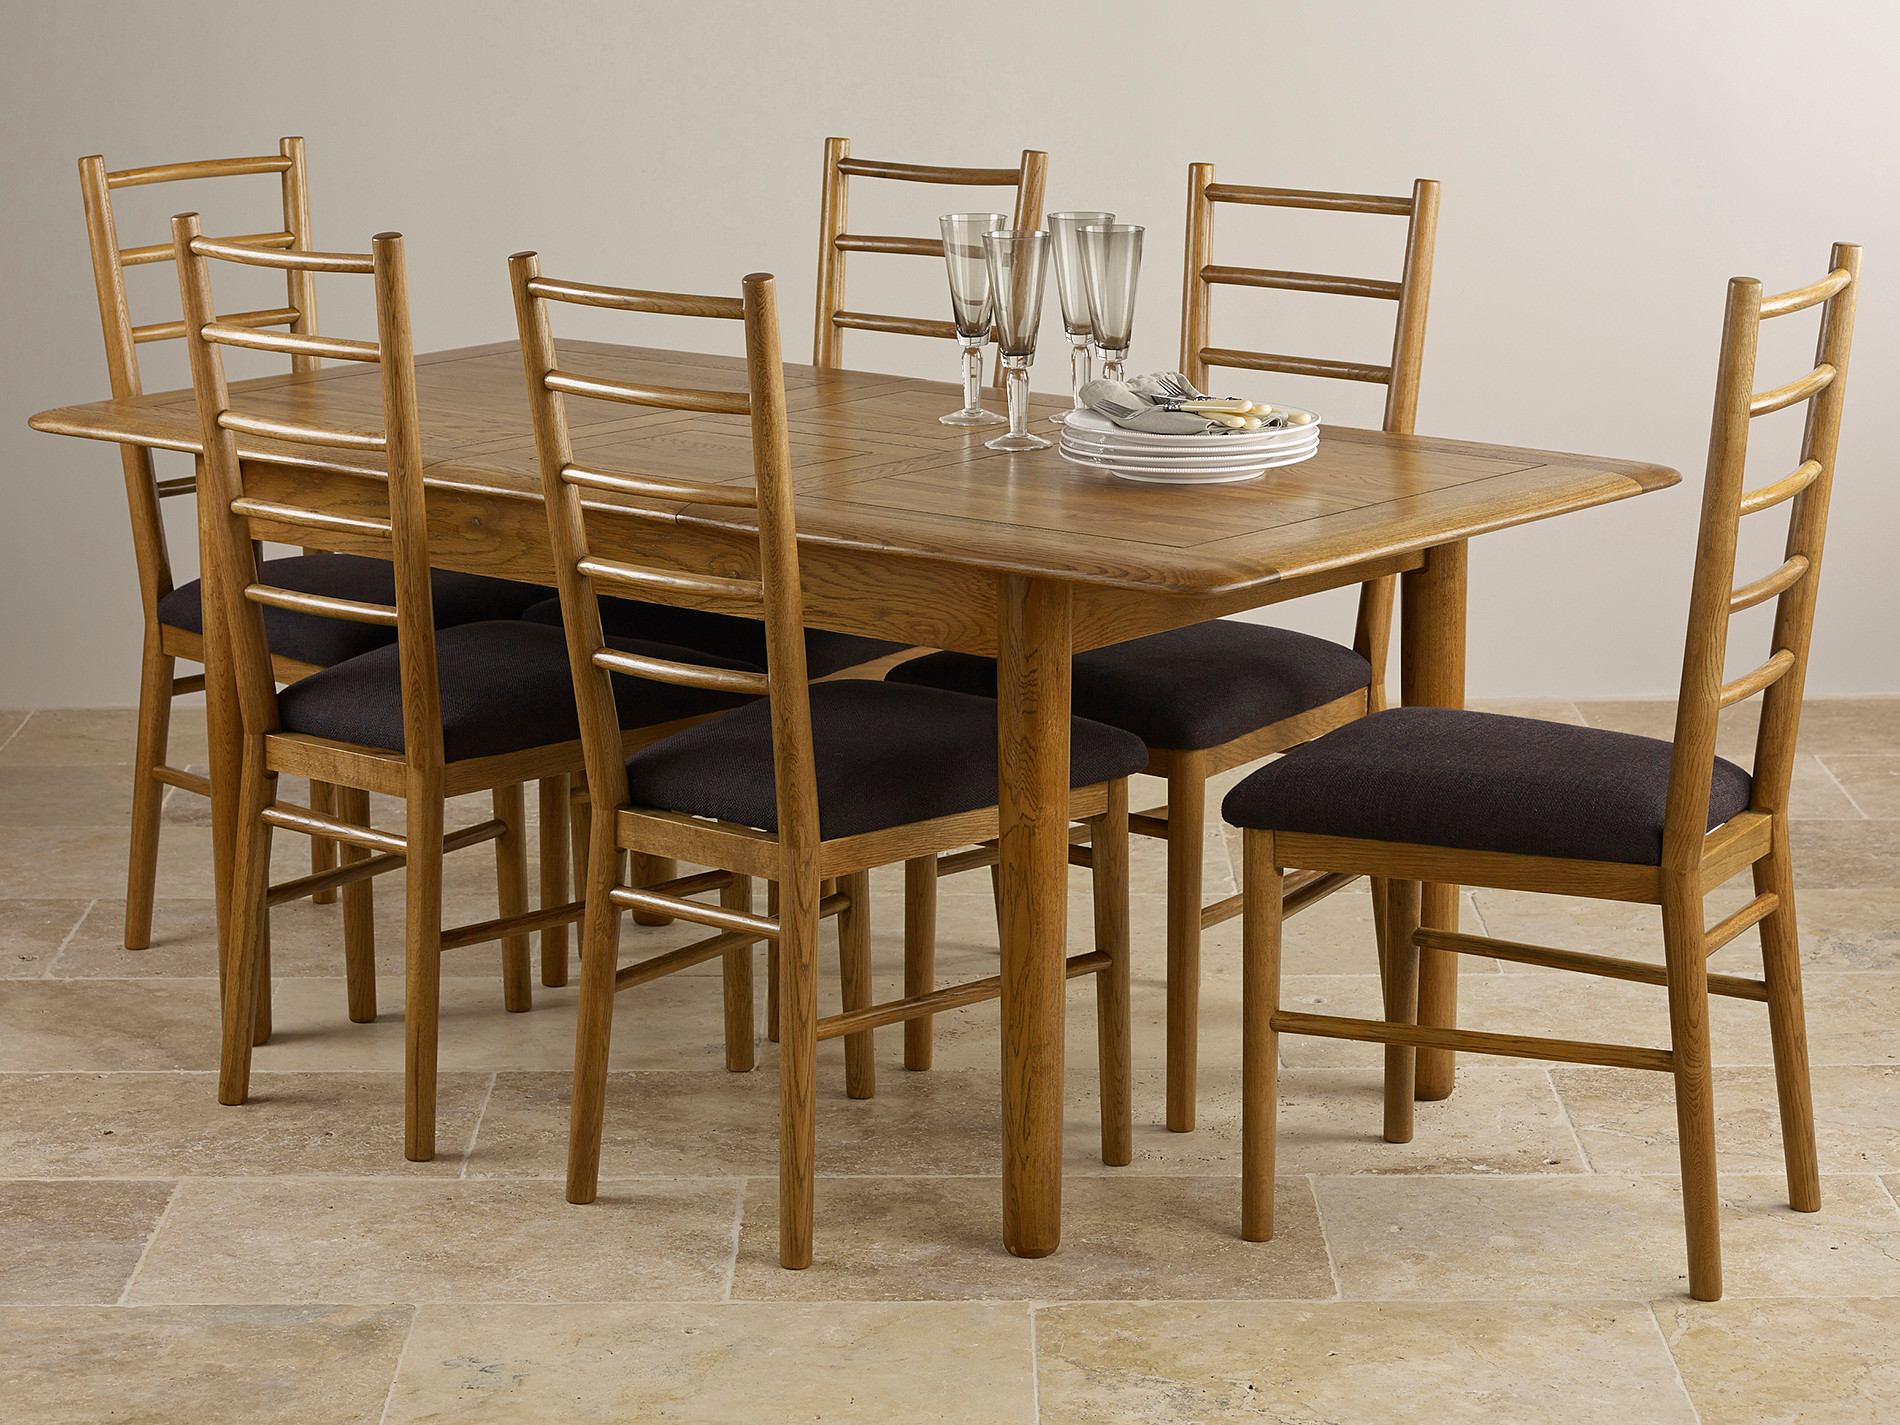 Osaka rustic solid oak 4ft 7 x 3ft extending dining table for 6 x dining room chairs